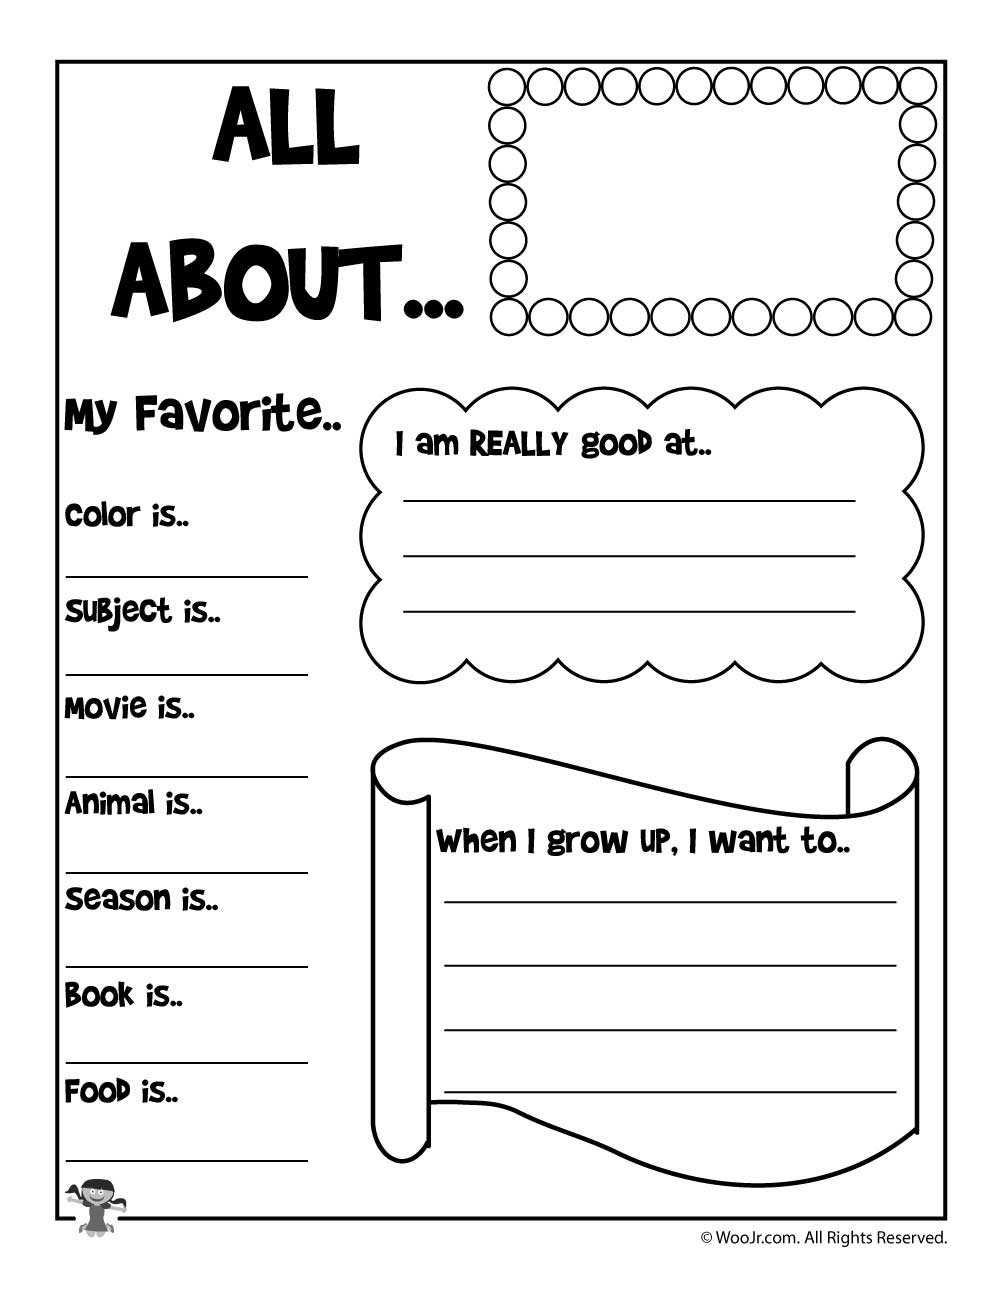 All About Me Printable Worksheet | Woo! Jr. Kids Activities